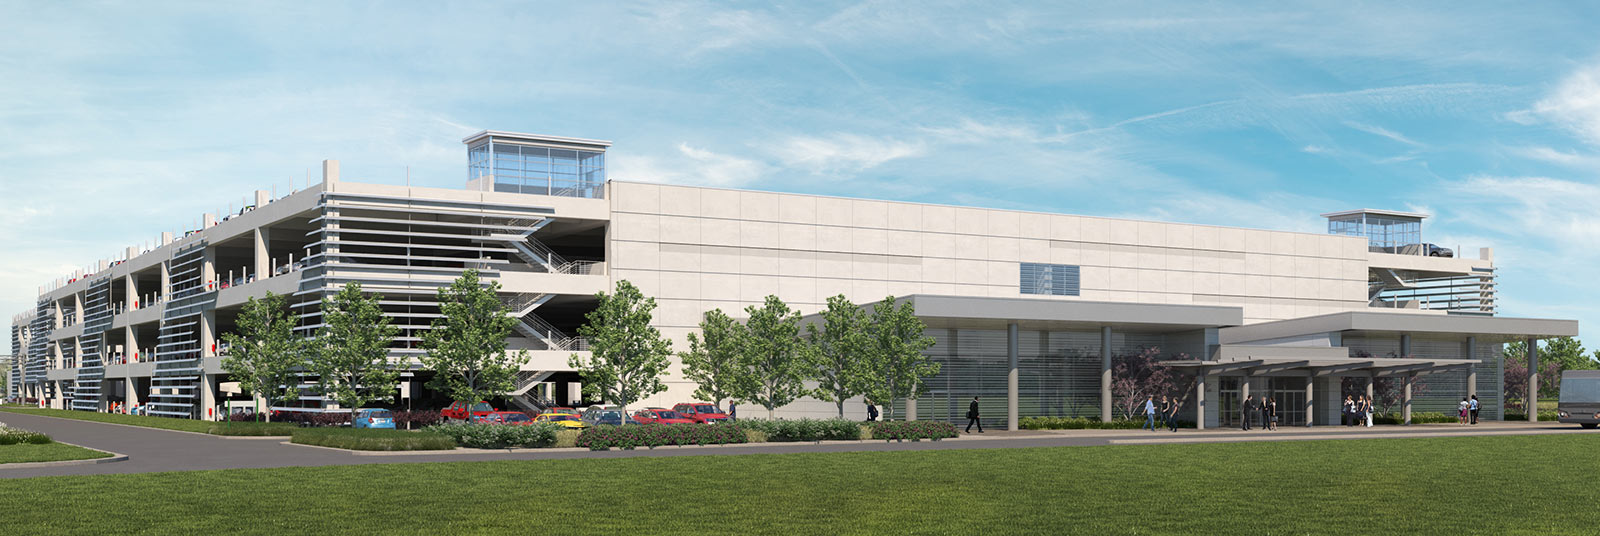 Rendering of the entrance to the new Consolidated Rental Car Facility at the John Glenn Columbus International Airport.